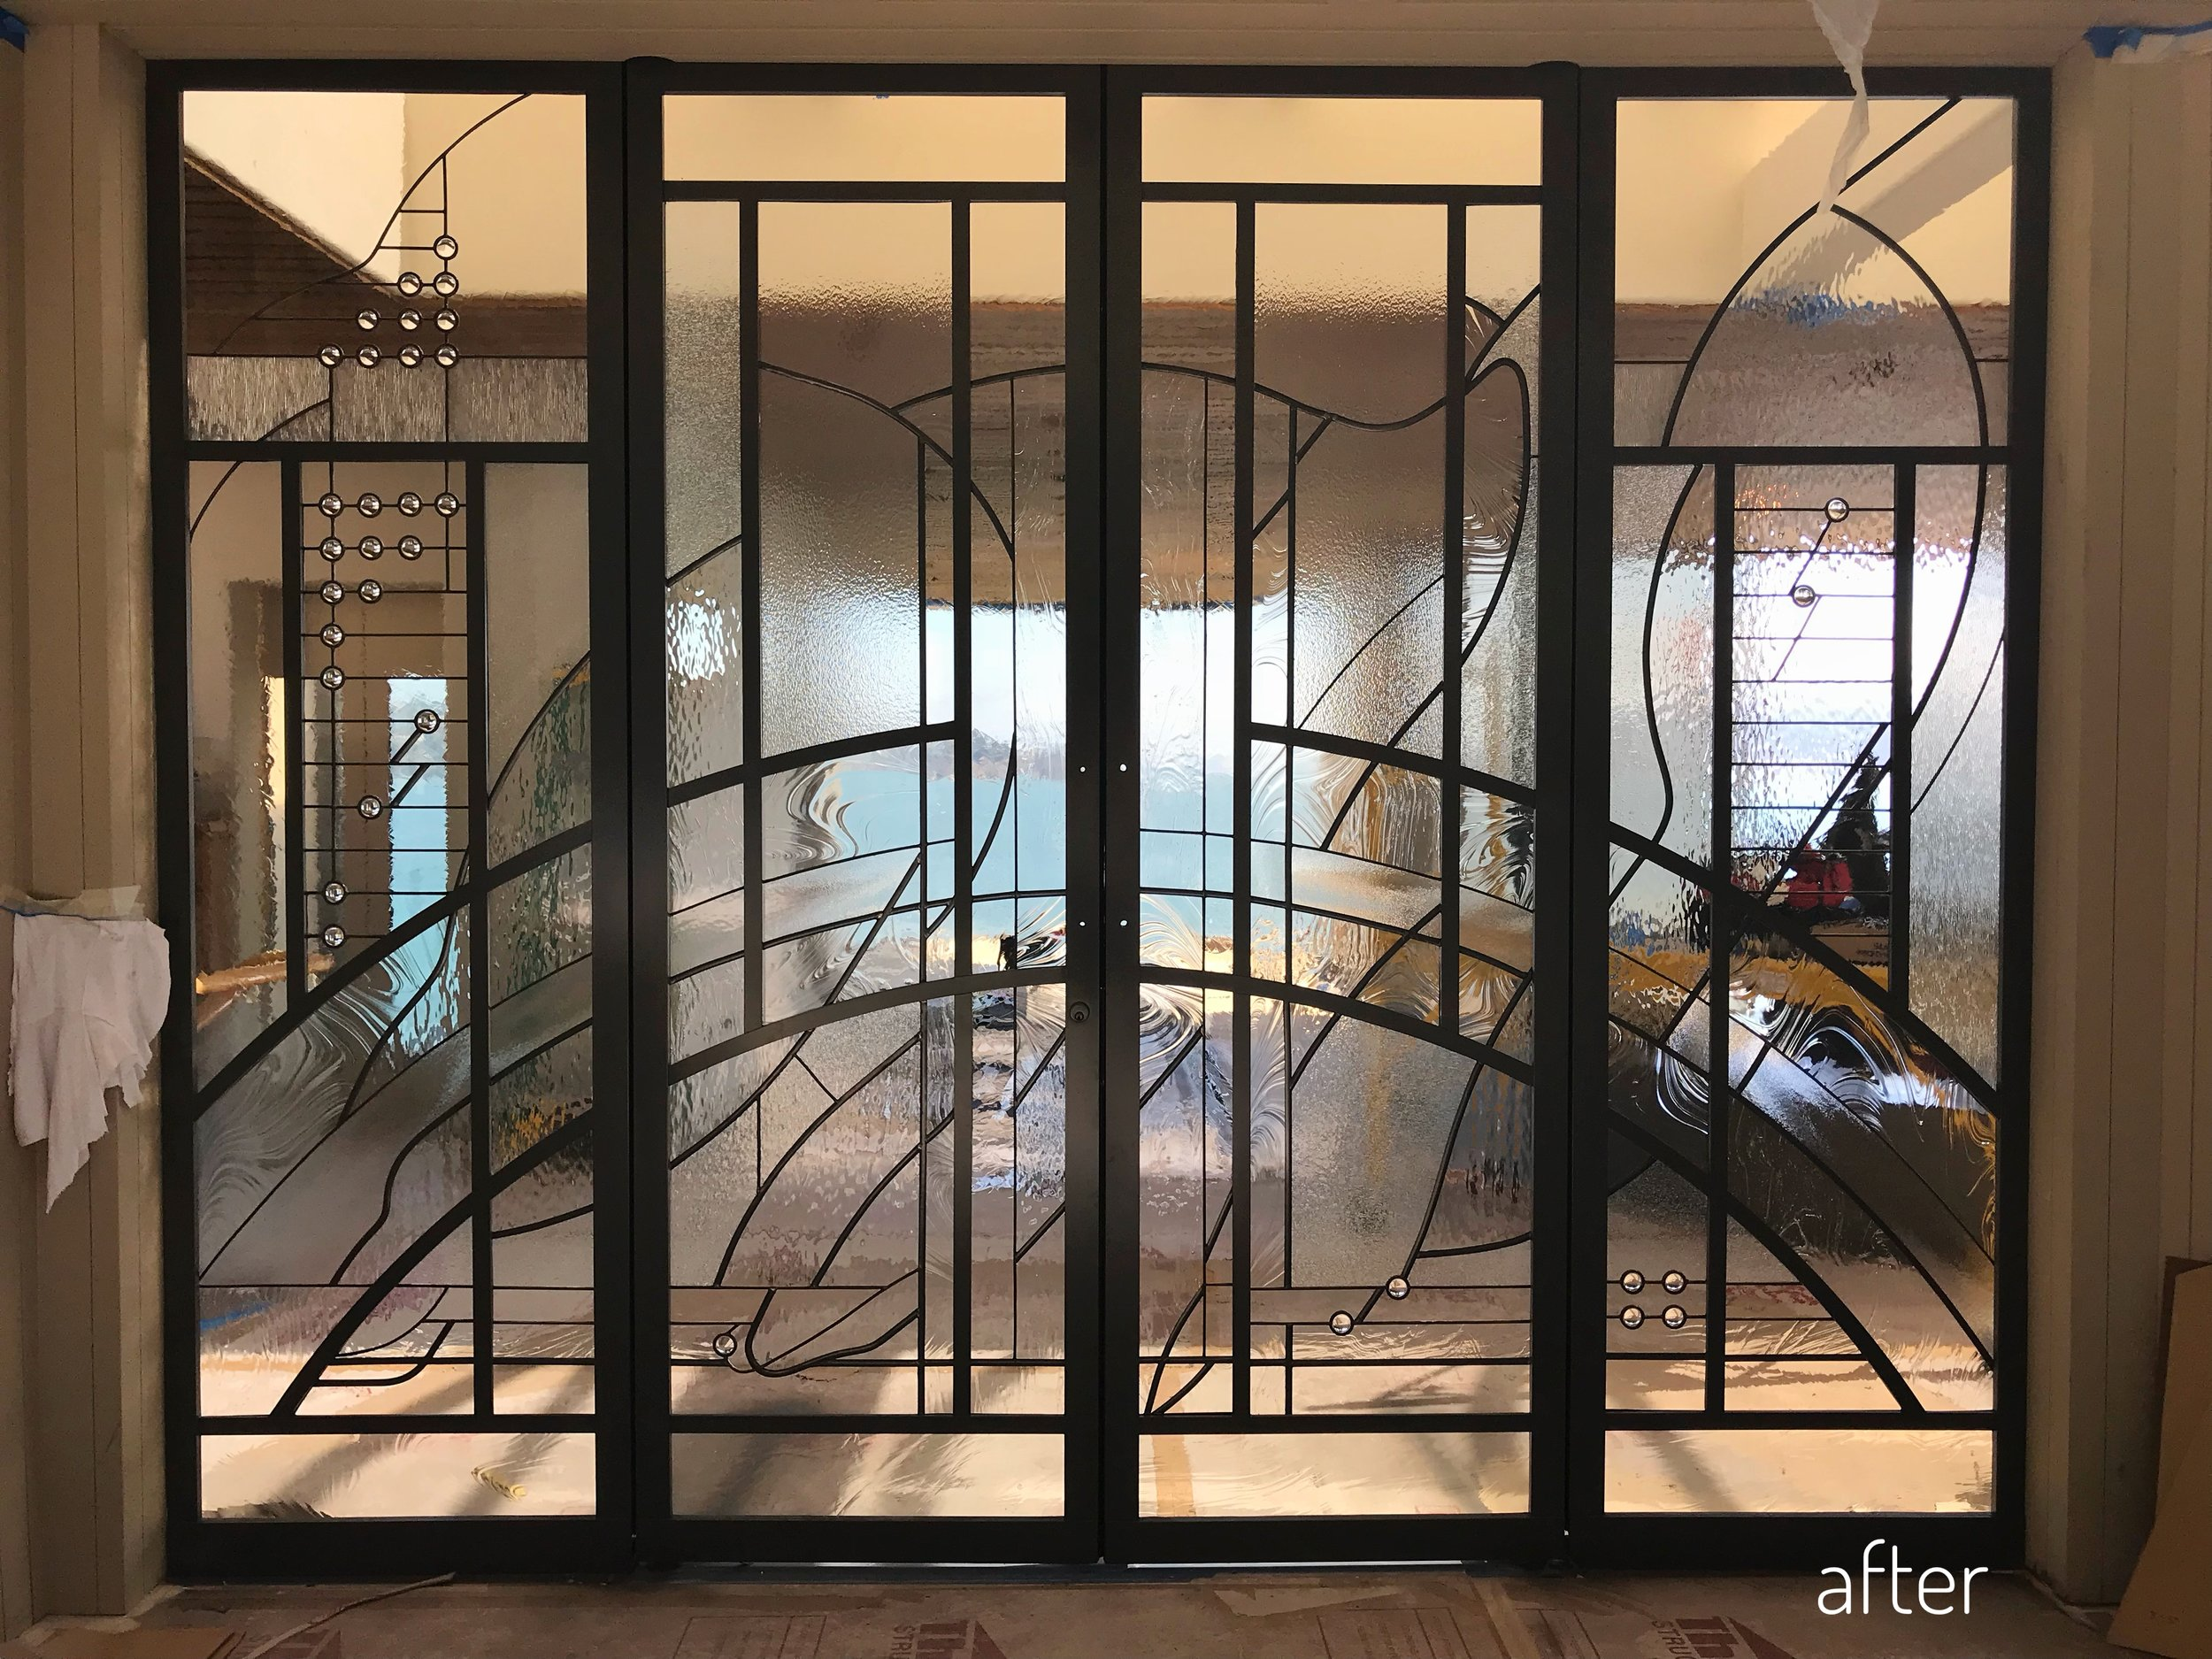 stained glass entry update renovation clear textured spectrum glass sausalito bay area view before and after front door sidelight 70s charm the wiseman group TWG legacy glass studios fontana construction2.jpg